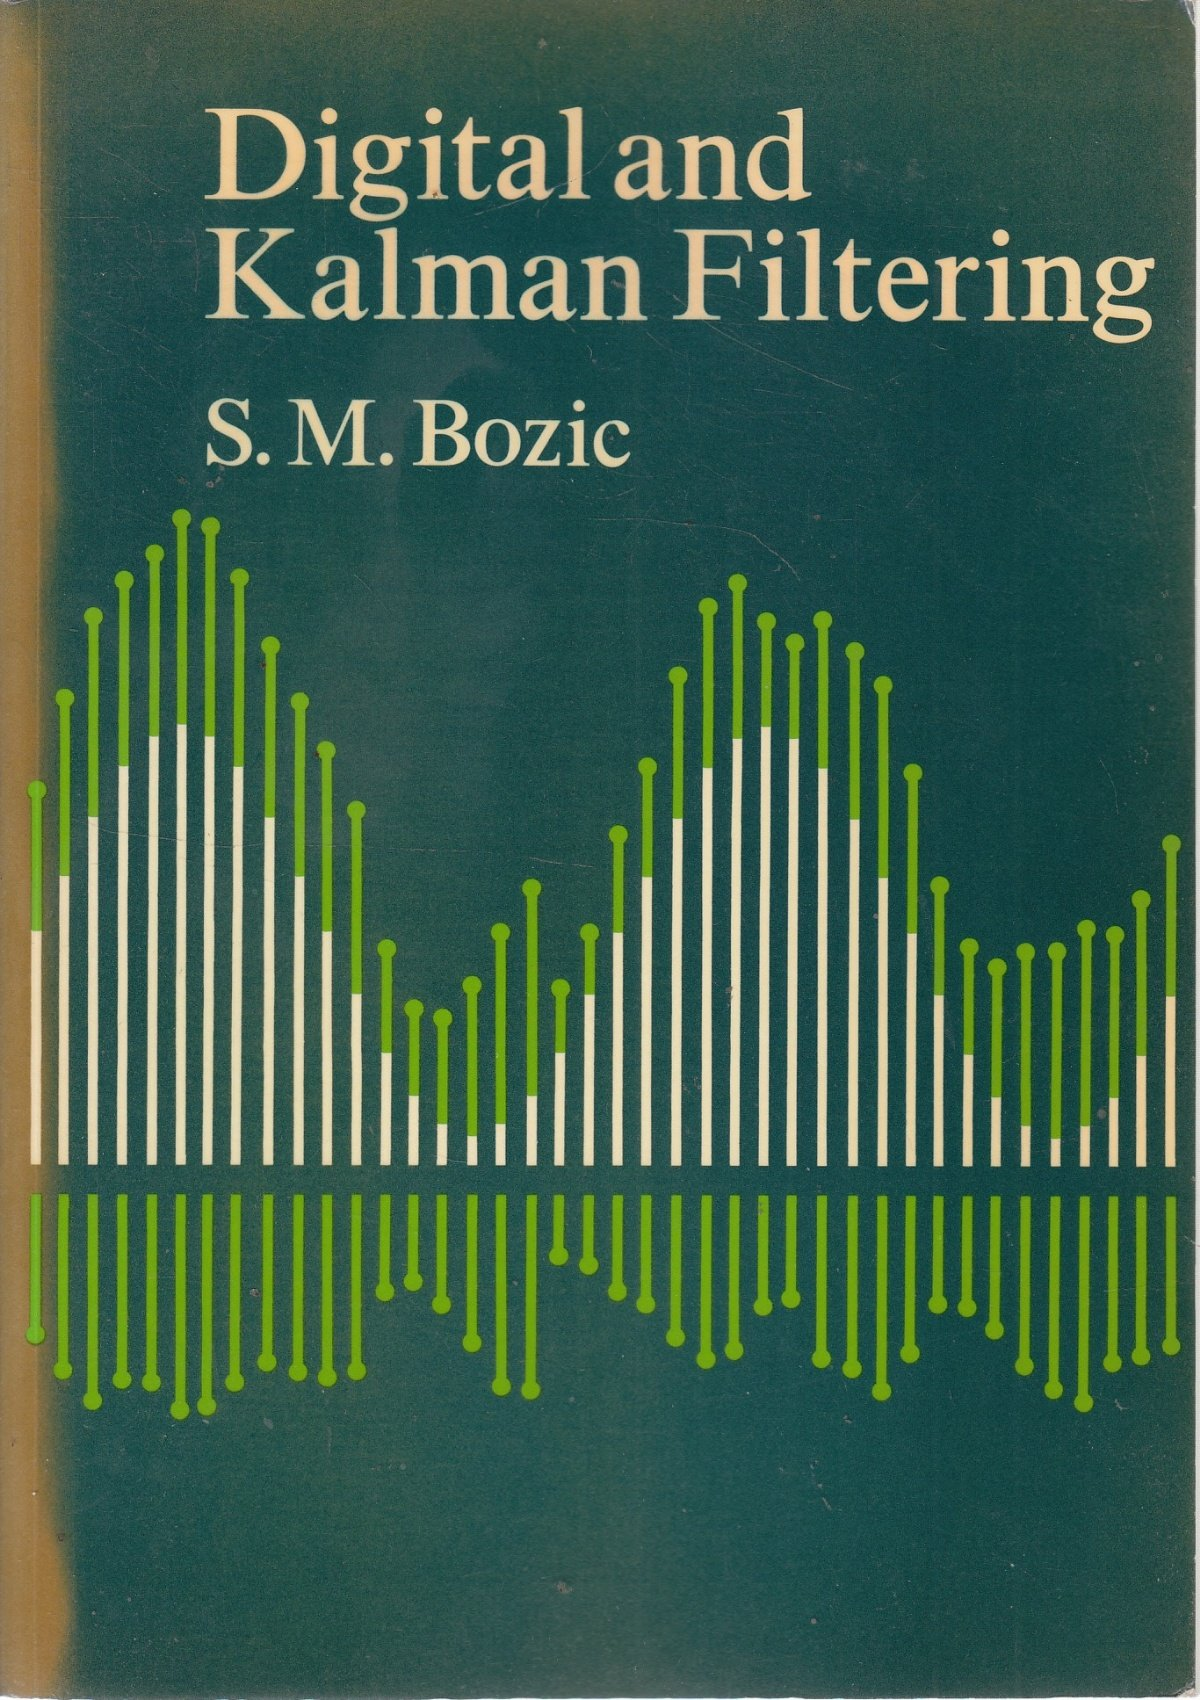 Digital and Kalman filtering: An introduction to discrete